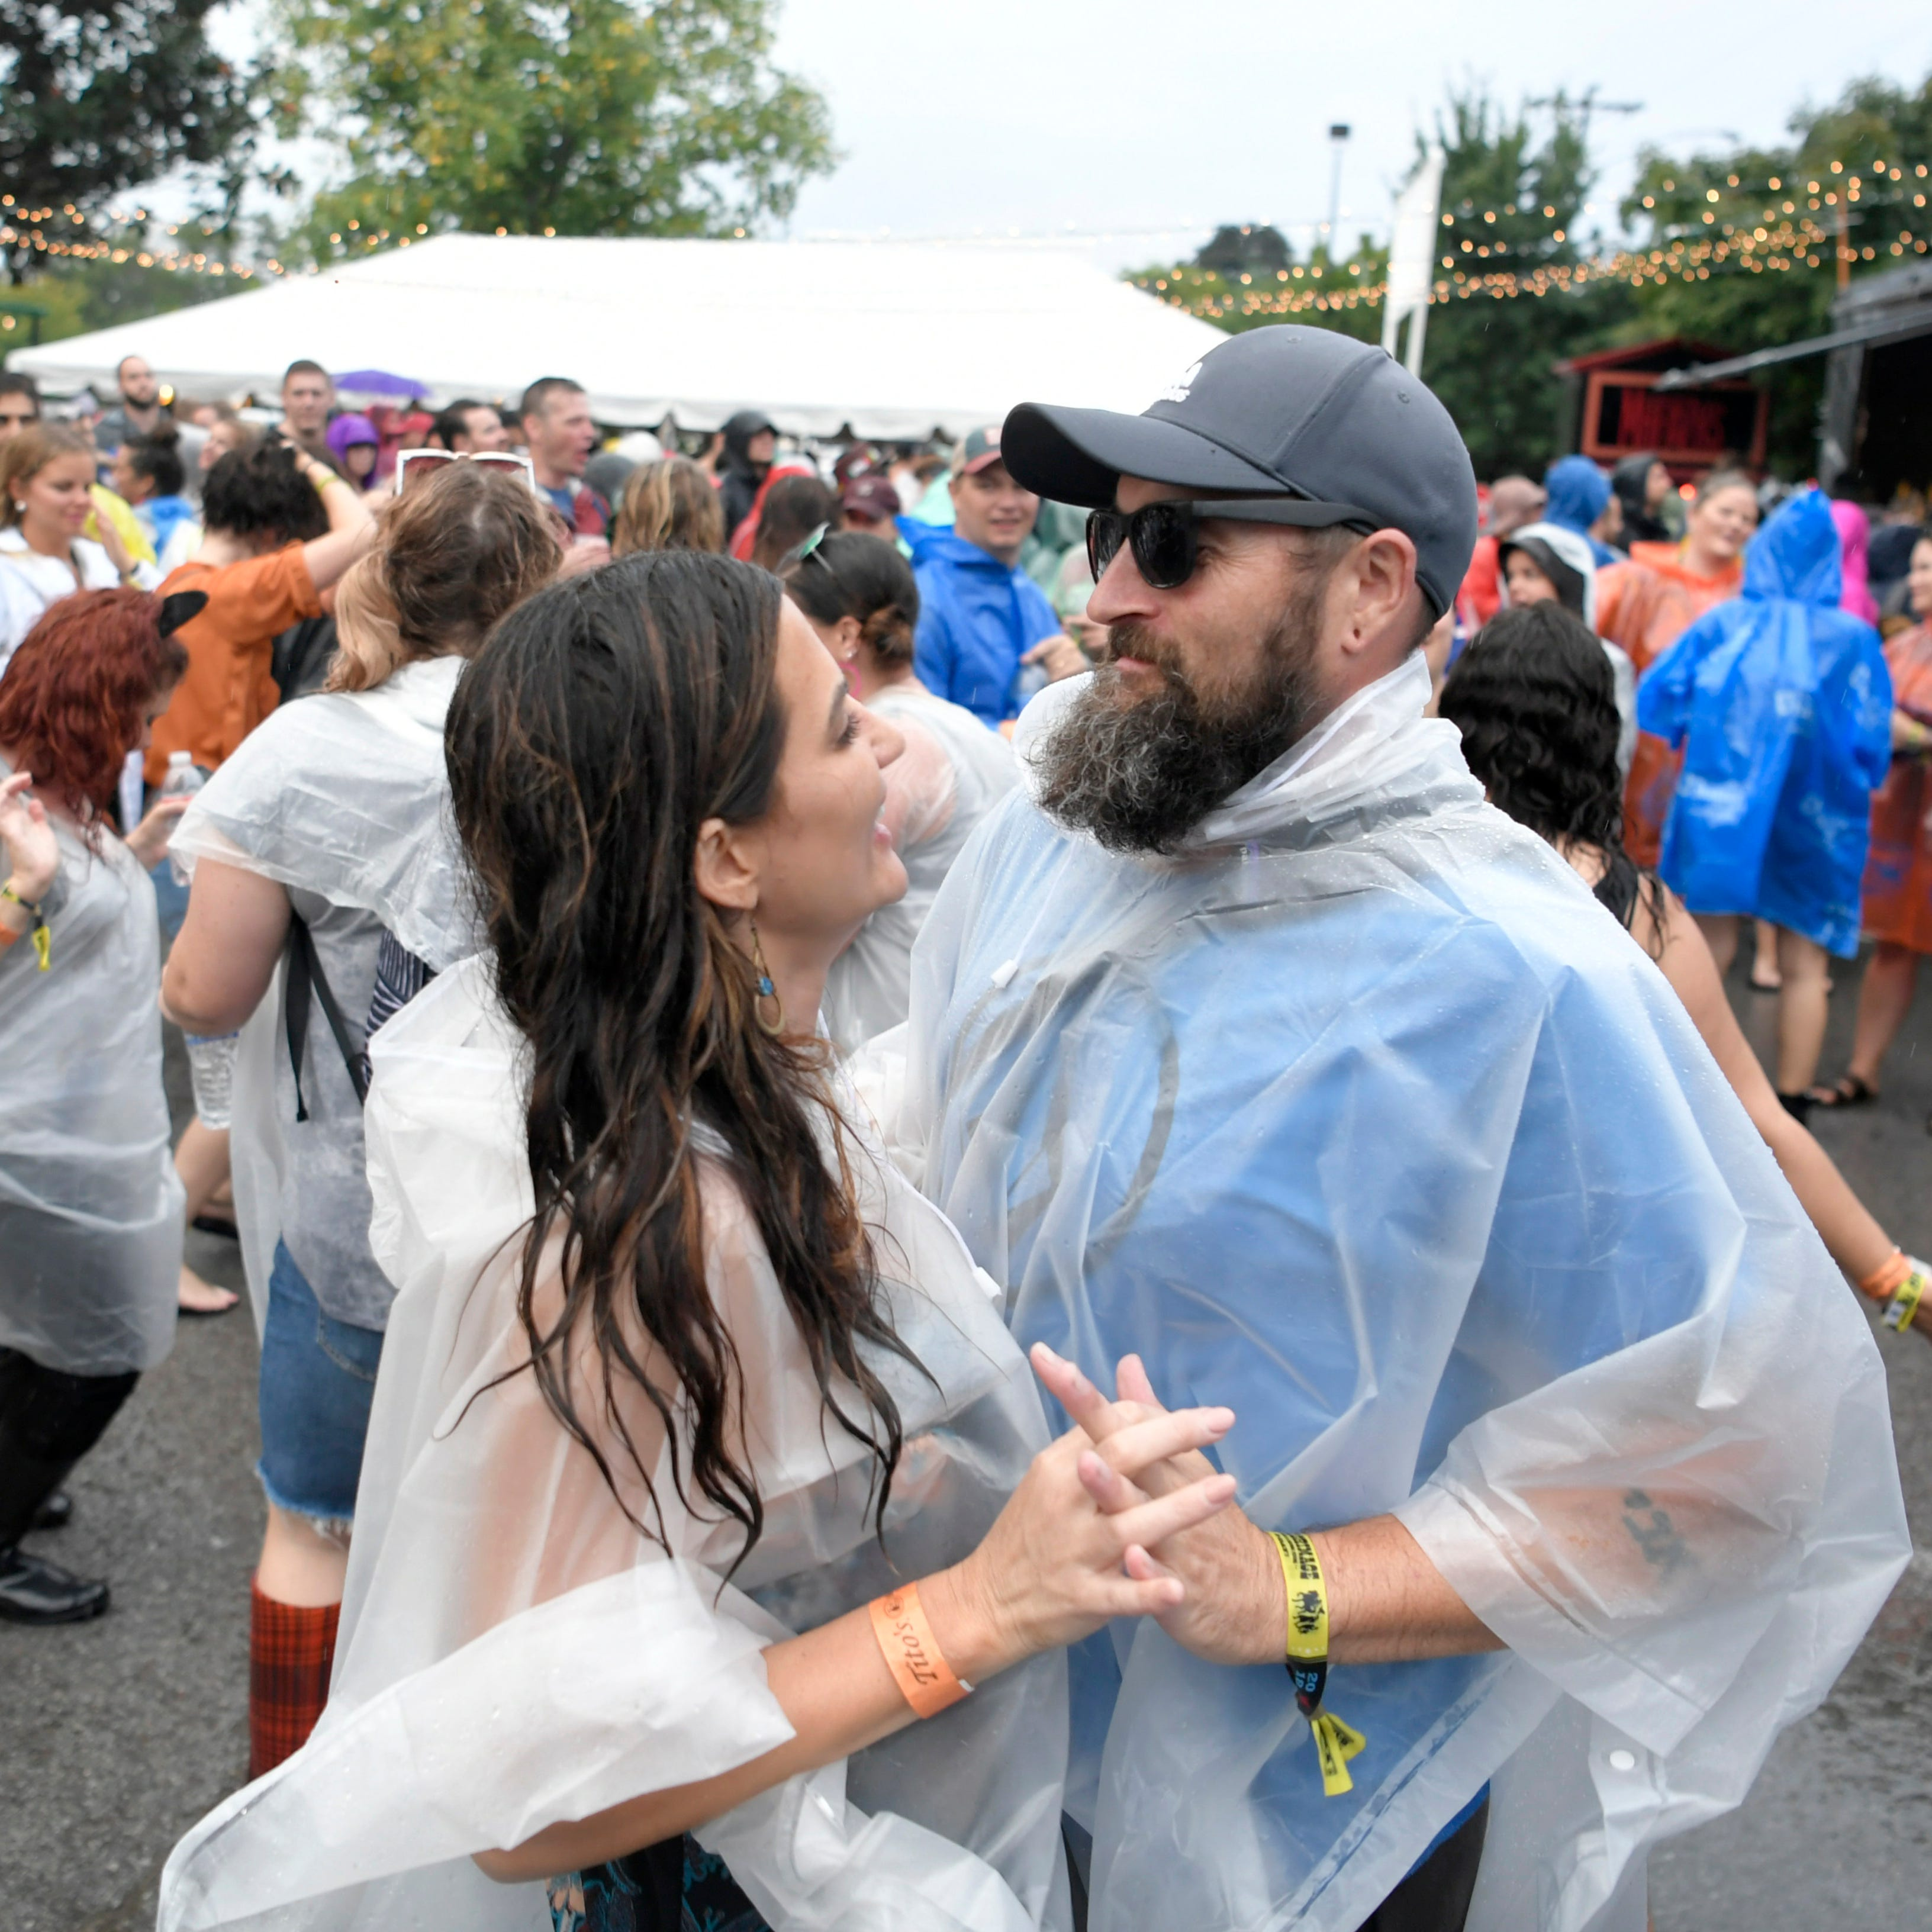 Pilgrimage Festival canceled Saturday, forced to shut down due to bad weather